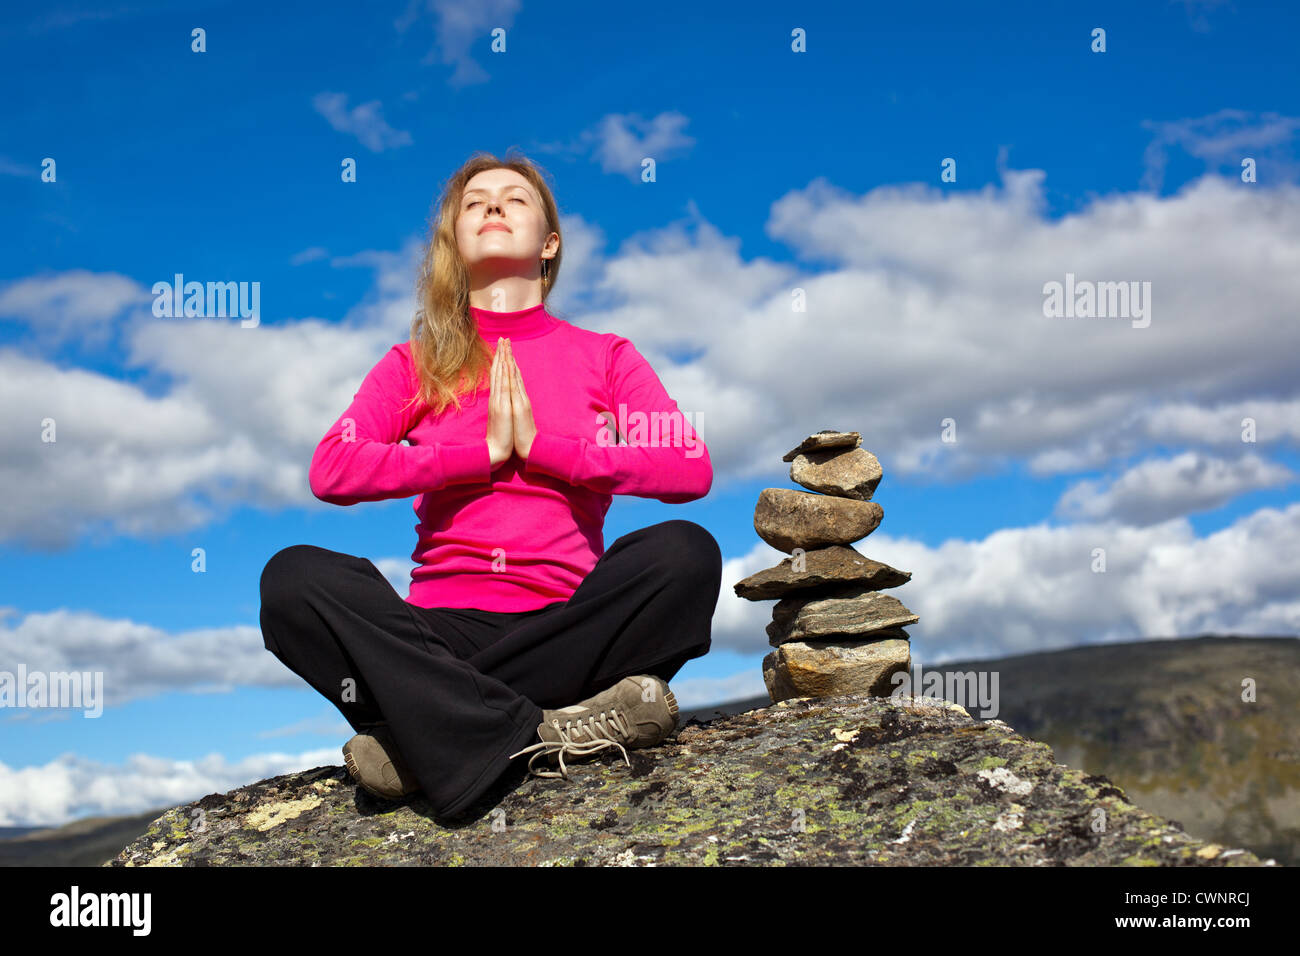 Young woman relaxing on mountains. - Stock Image